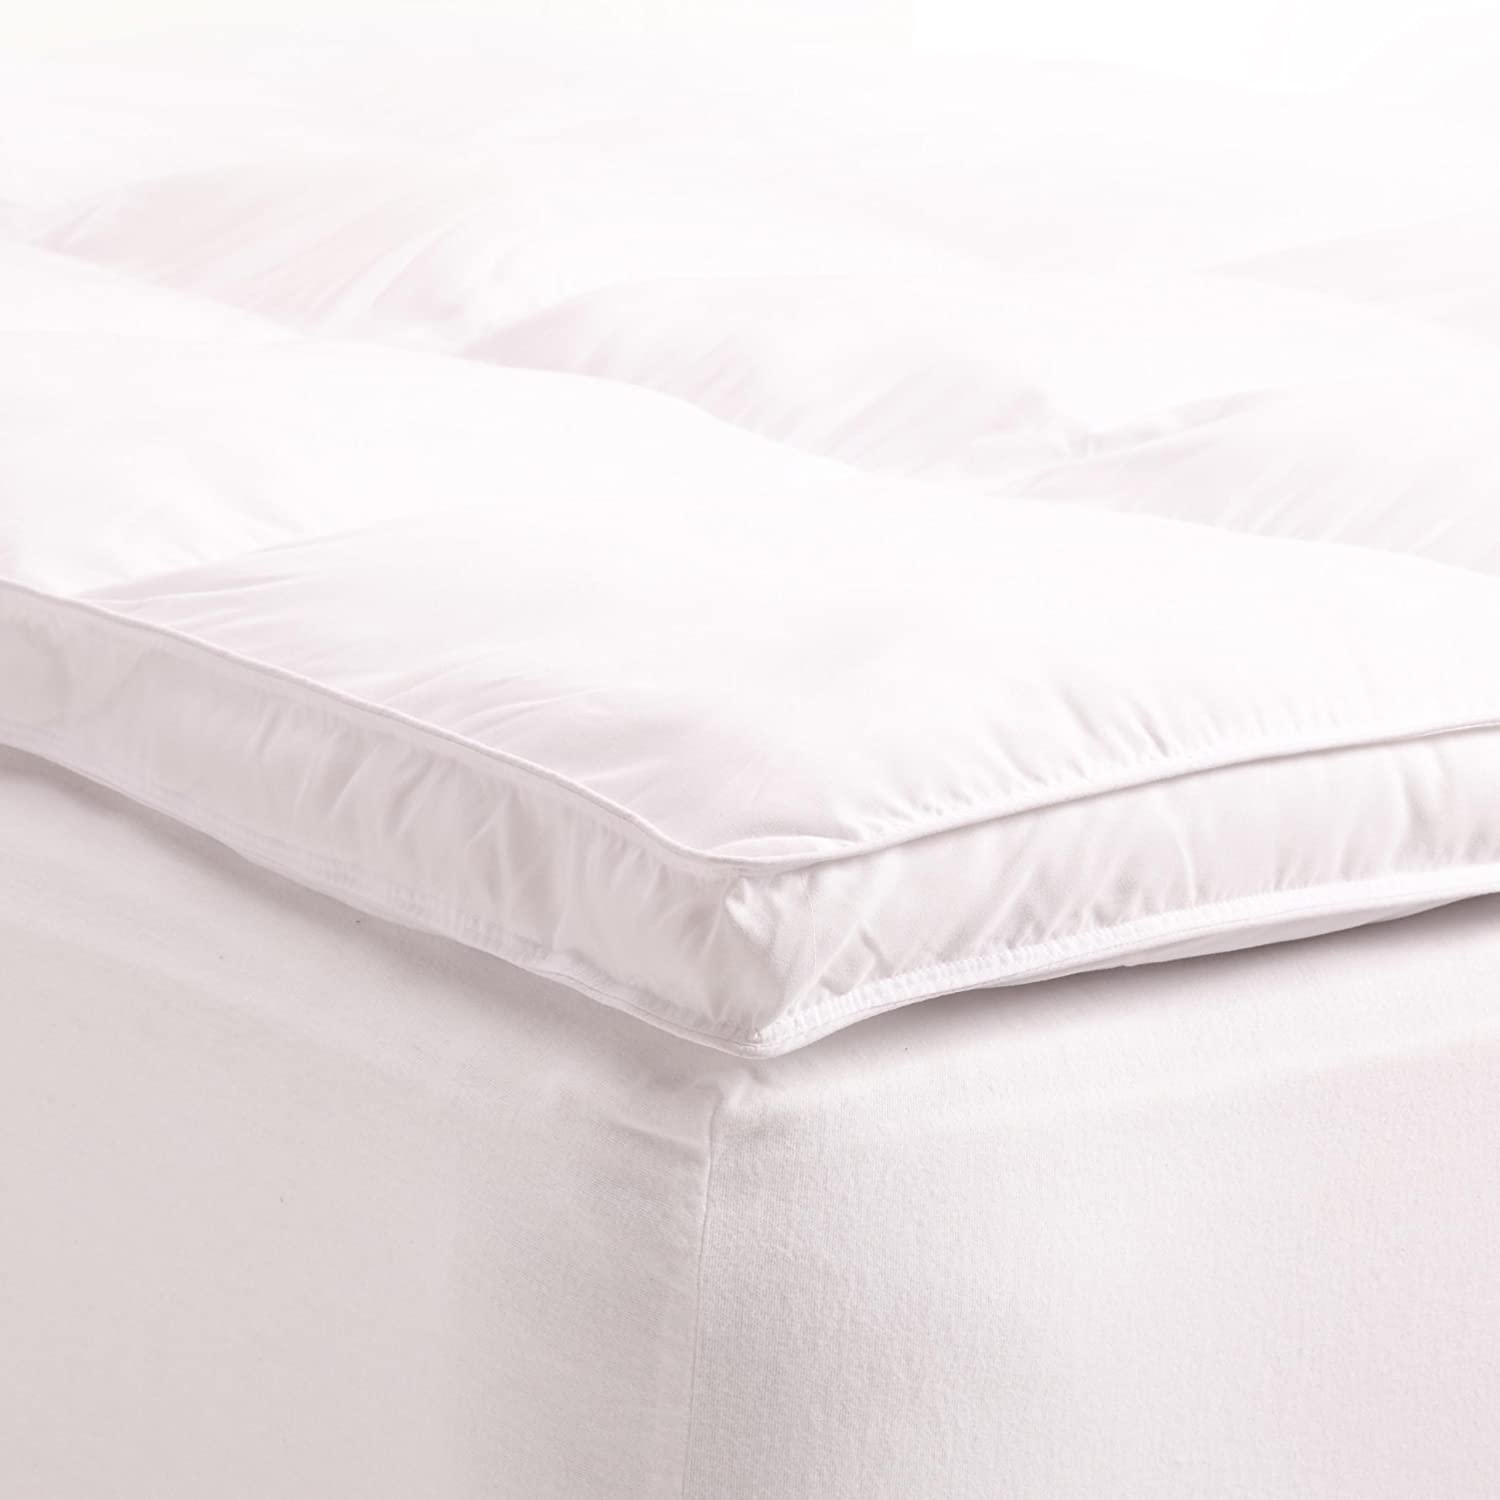 buy top pillow spring double mattress topper luxury product palermo latex